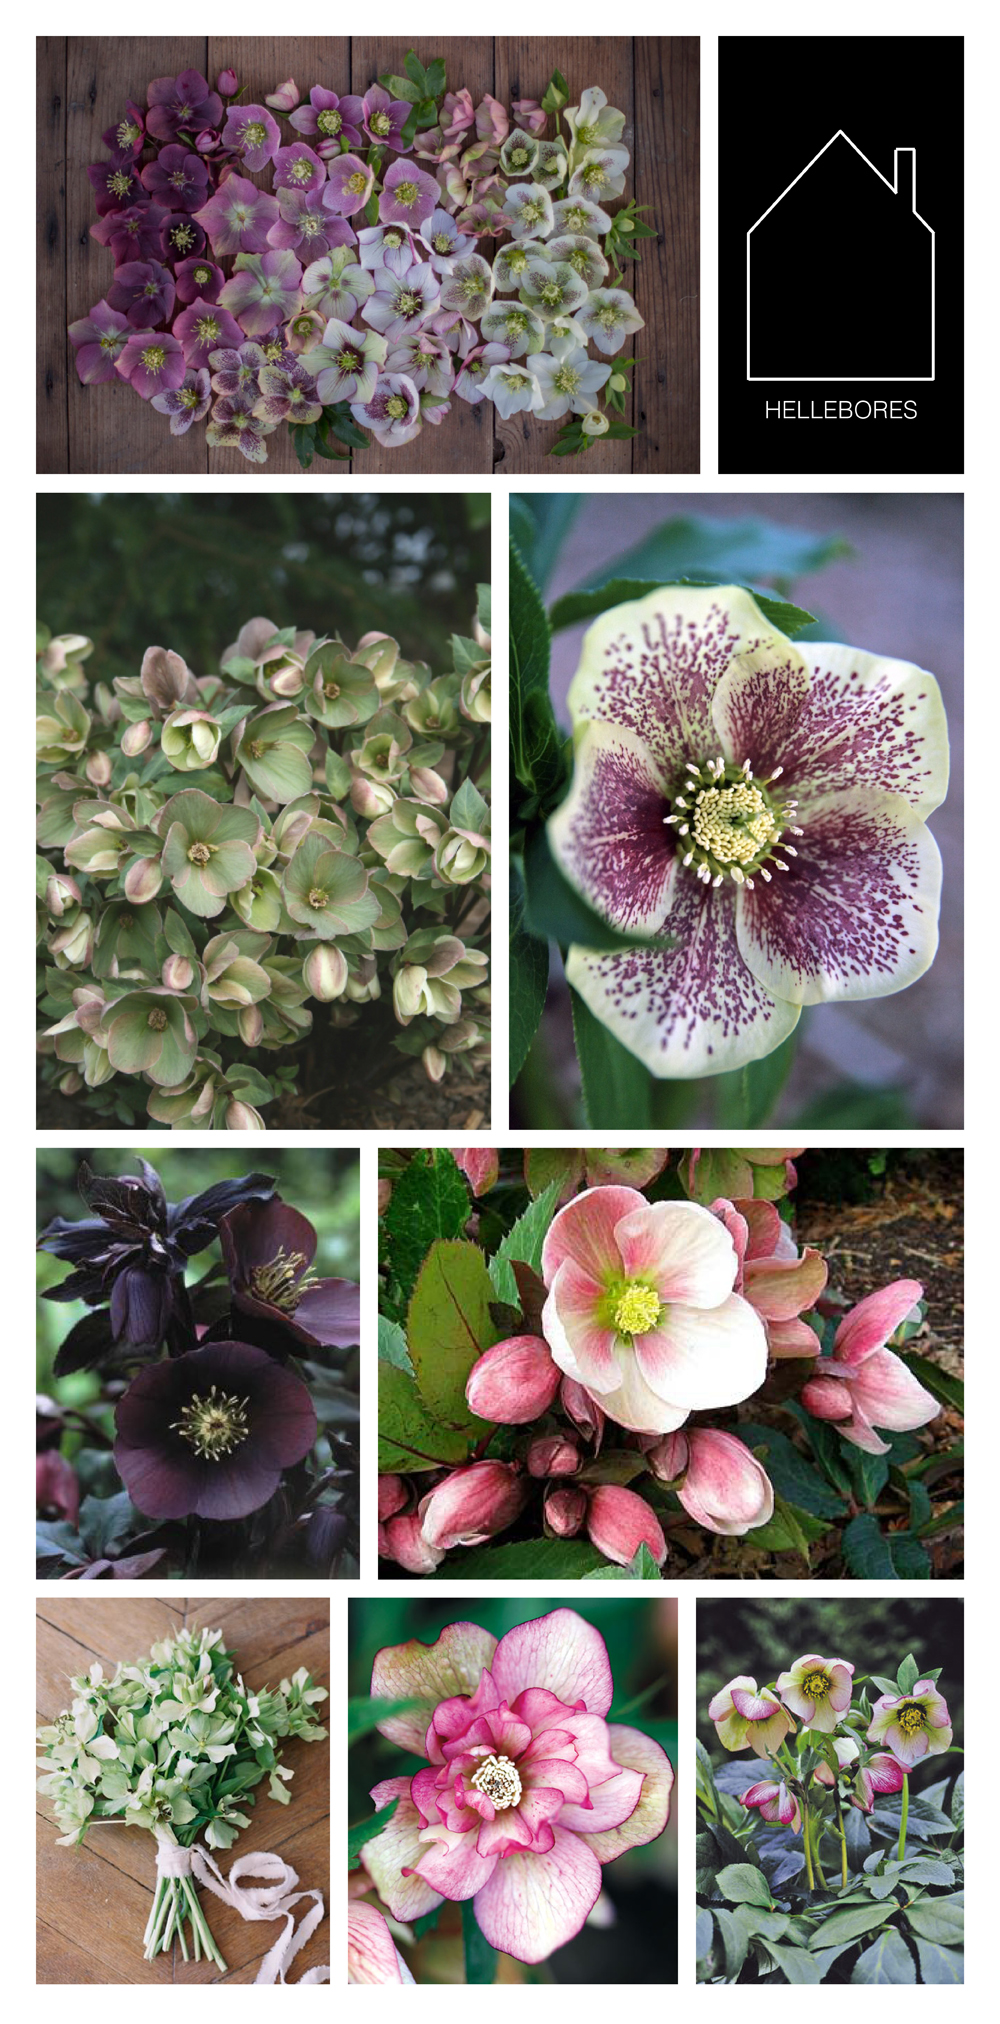 from top left: hellebores display via Floret - ivory prince variety via Plant Delight - ice follies variety via Conrad Art Glass & Garden - blue lady variety via VonBloem Gardens - source unknown - ivory prince bouquet via Once Wed - peppermint ice via Canadian Gardening -  picotee lady variety via Skagit Gardens